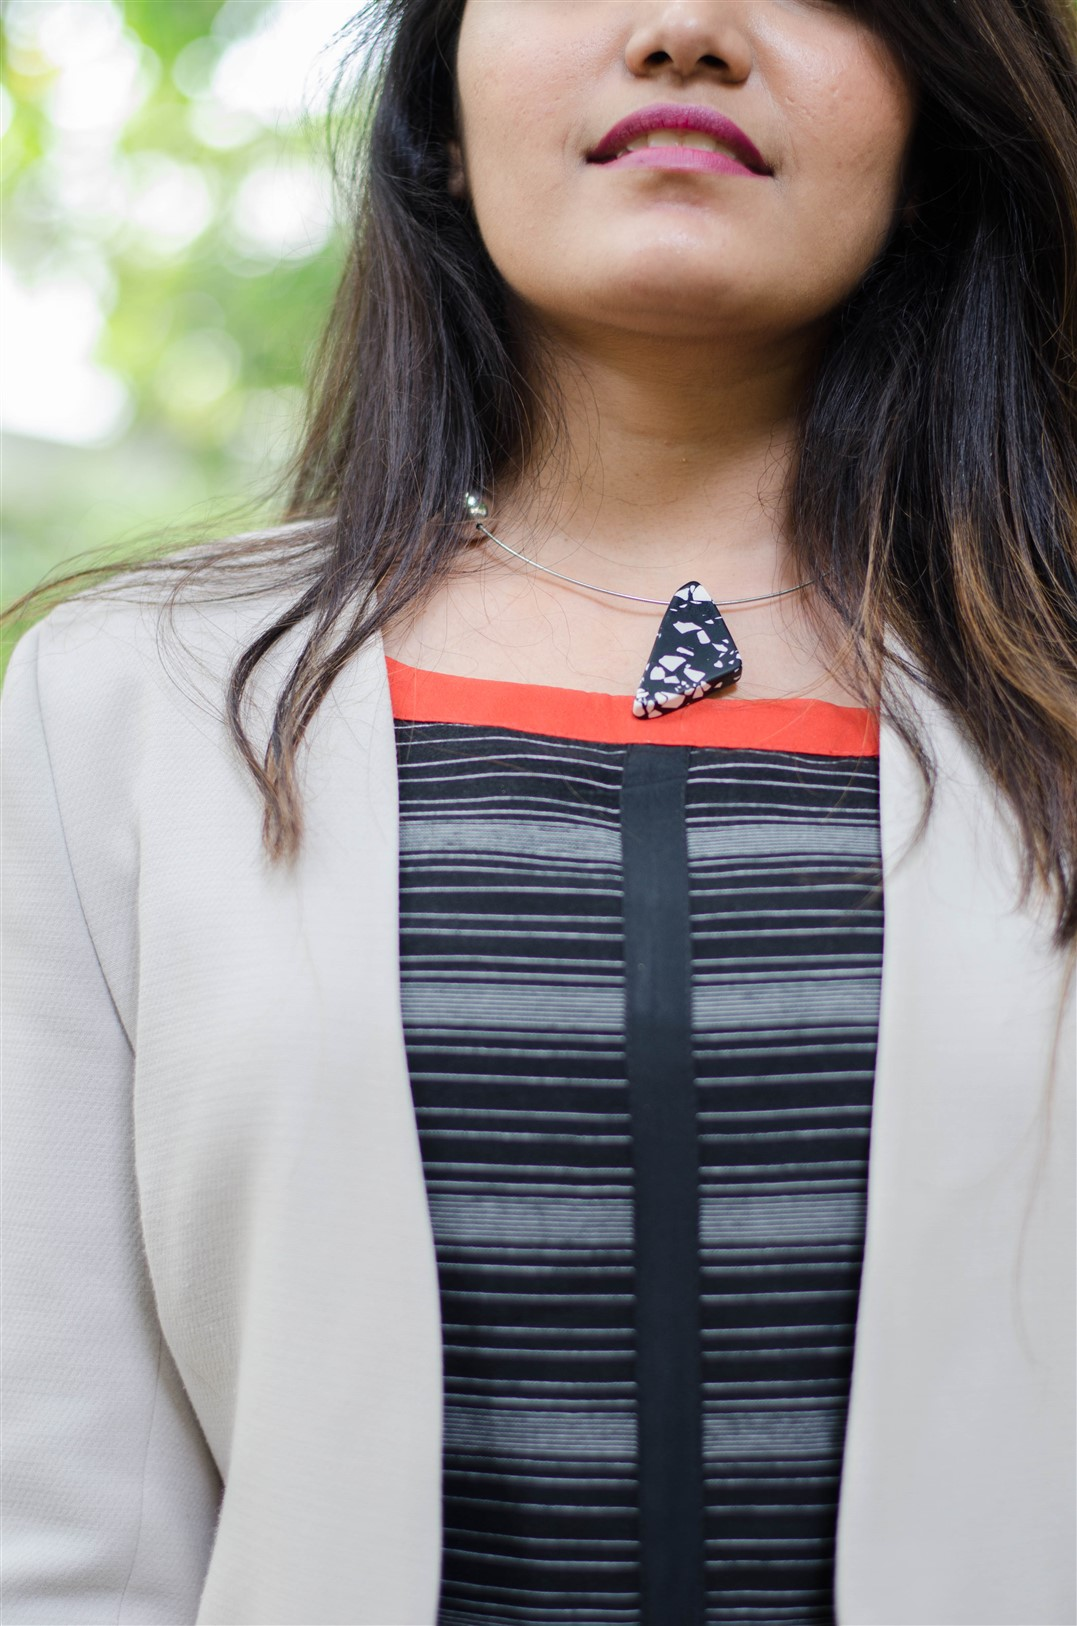 hm choker the jeromy diaries indian fashion blogger